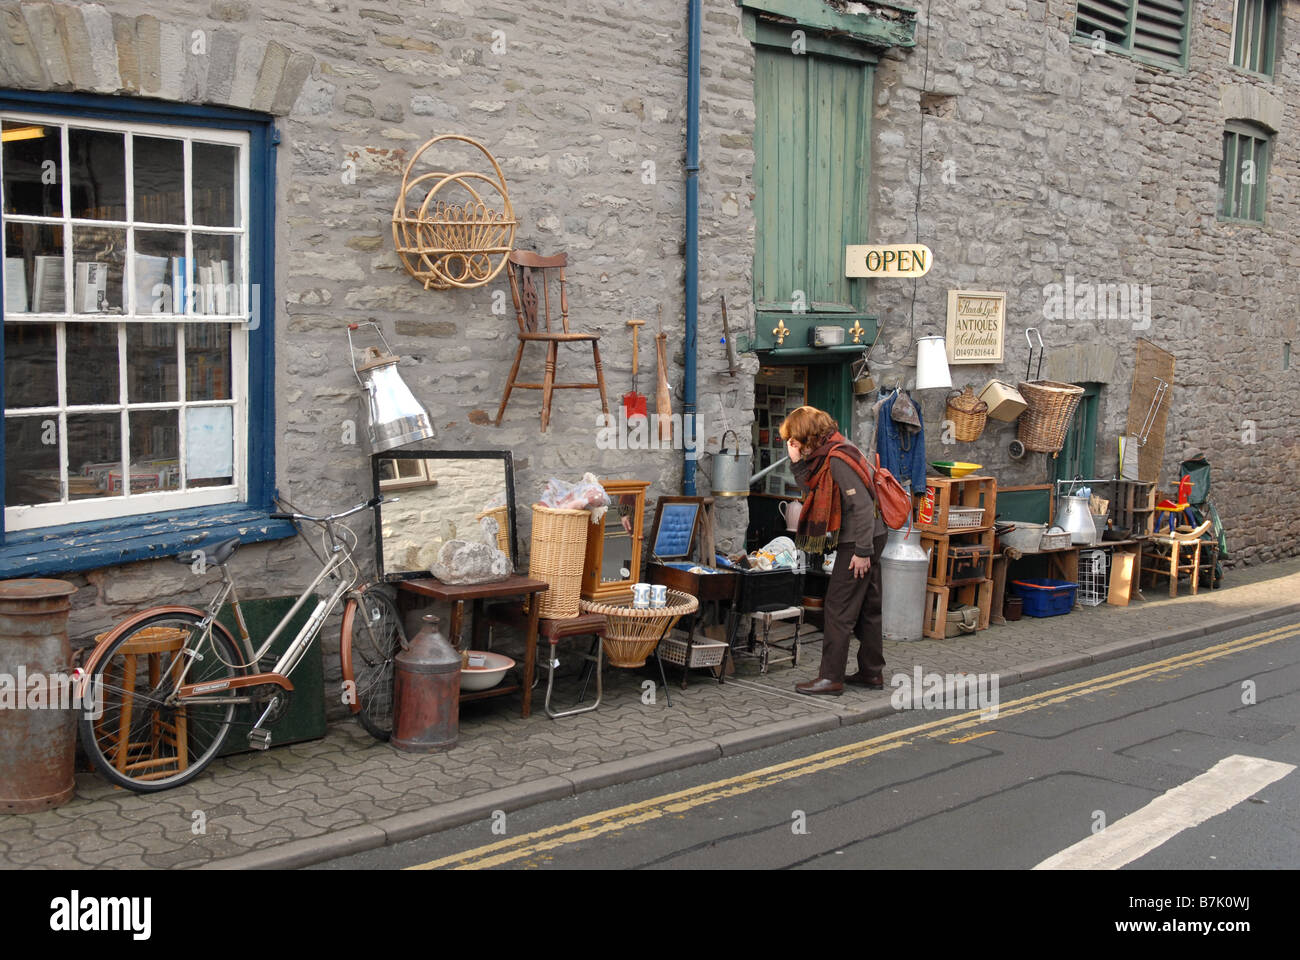 Antique or bric a brac shop in Hay on Wye Herefordshire - Stock Image